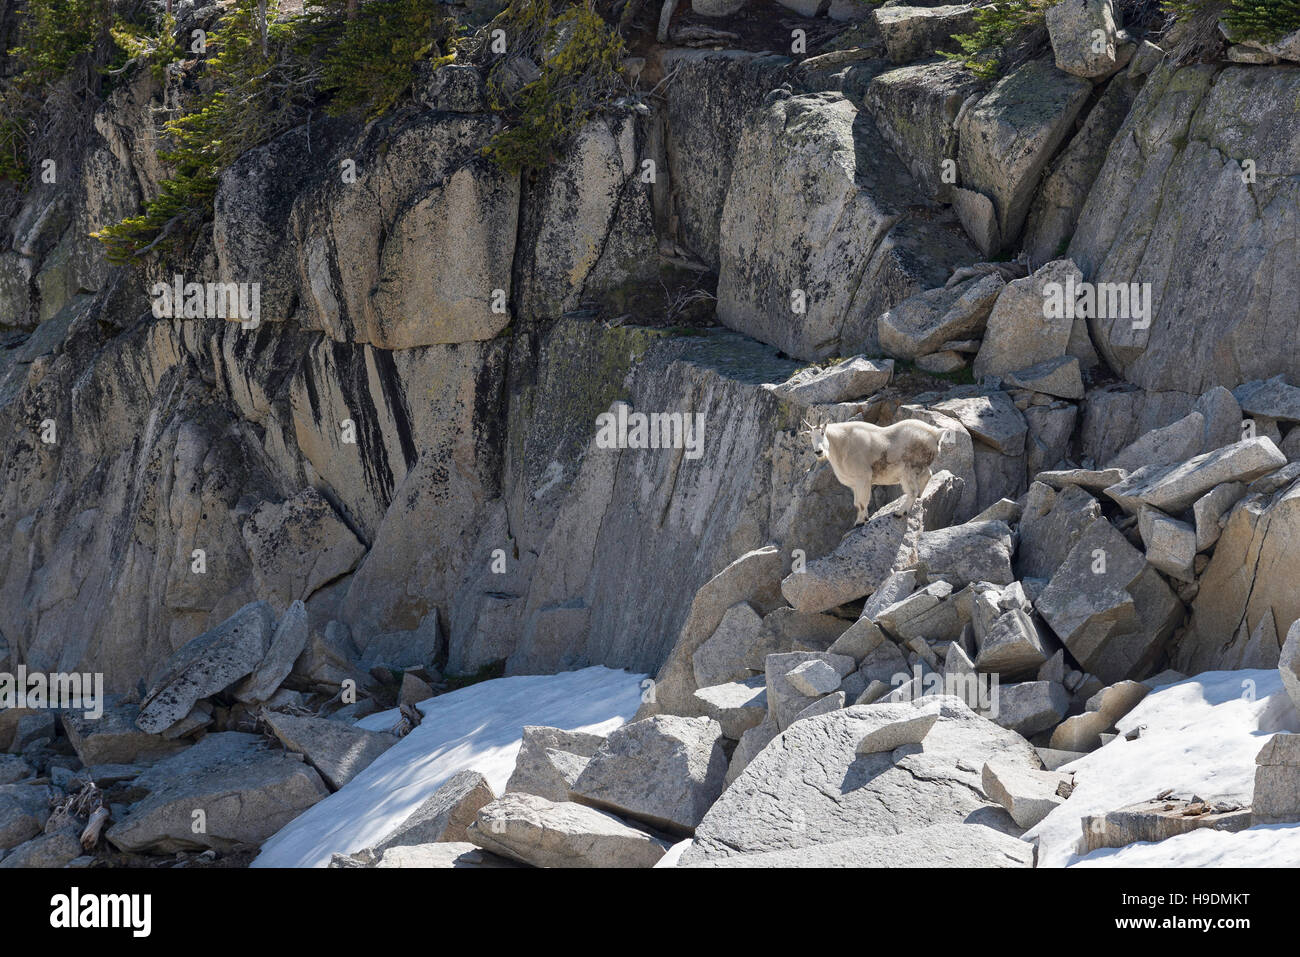 Mountain goat standing on a boulder in Oregon's Wallowa Mountains. Stock Photo